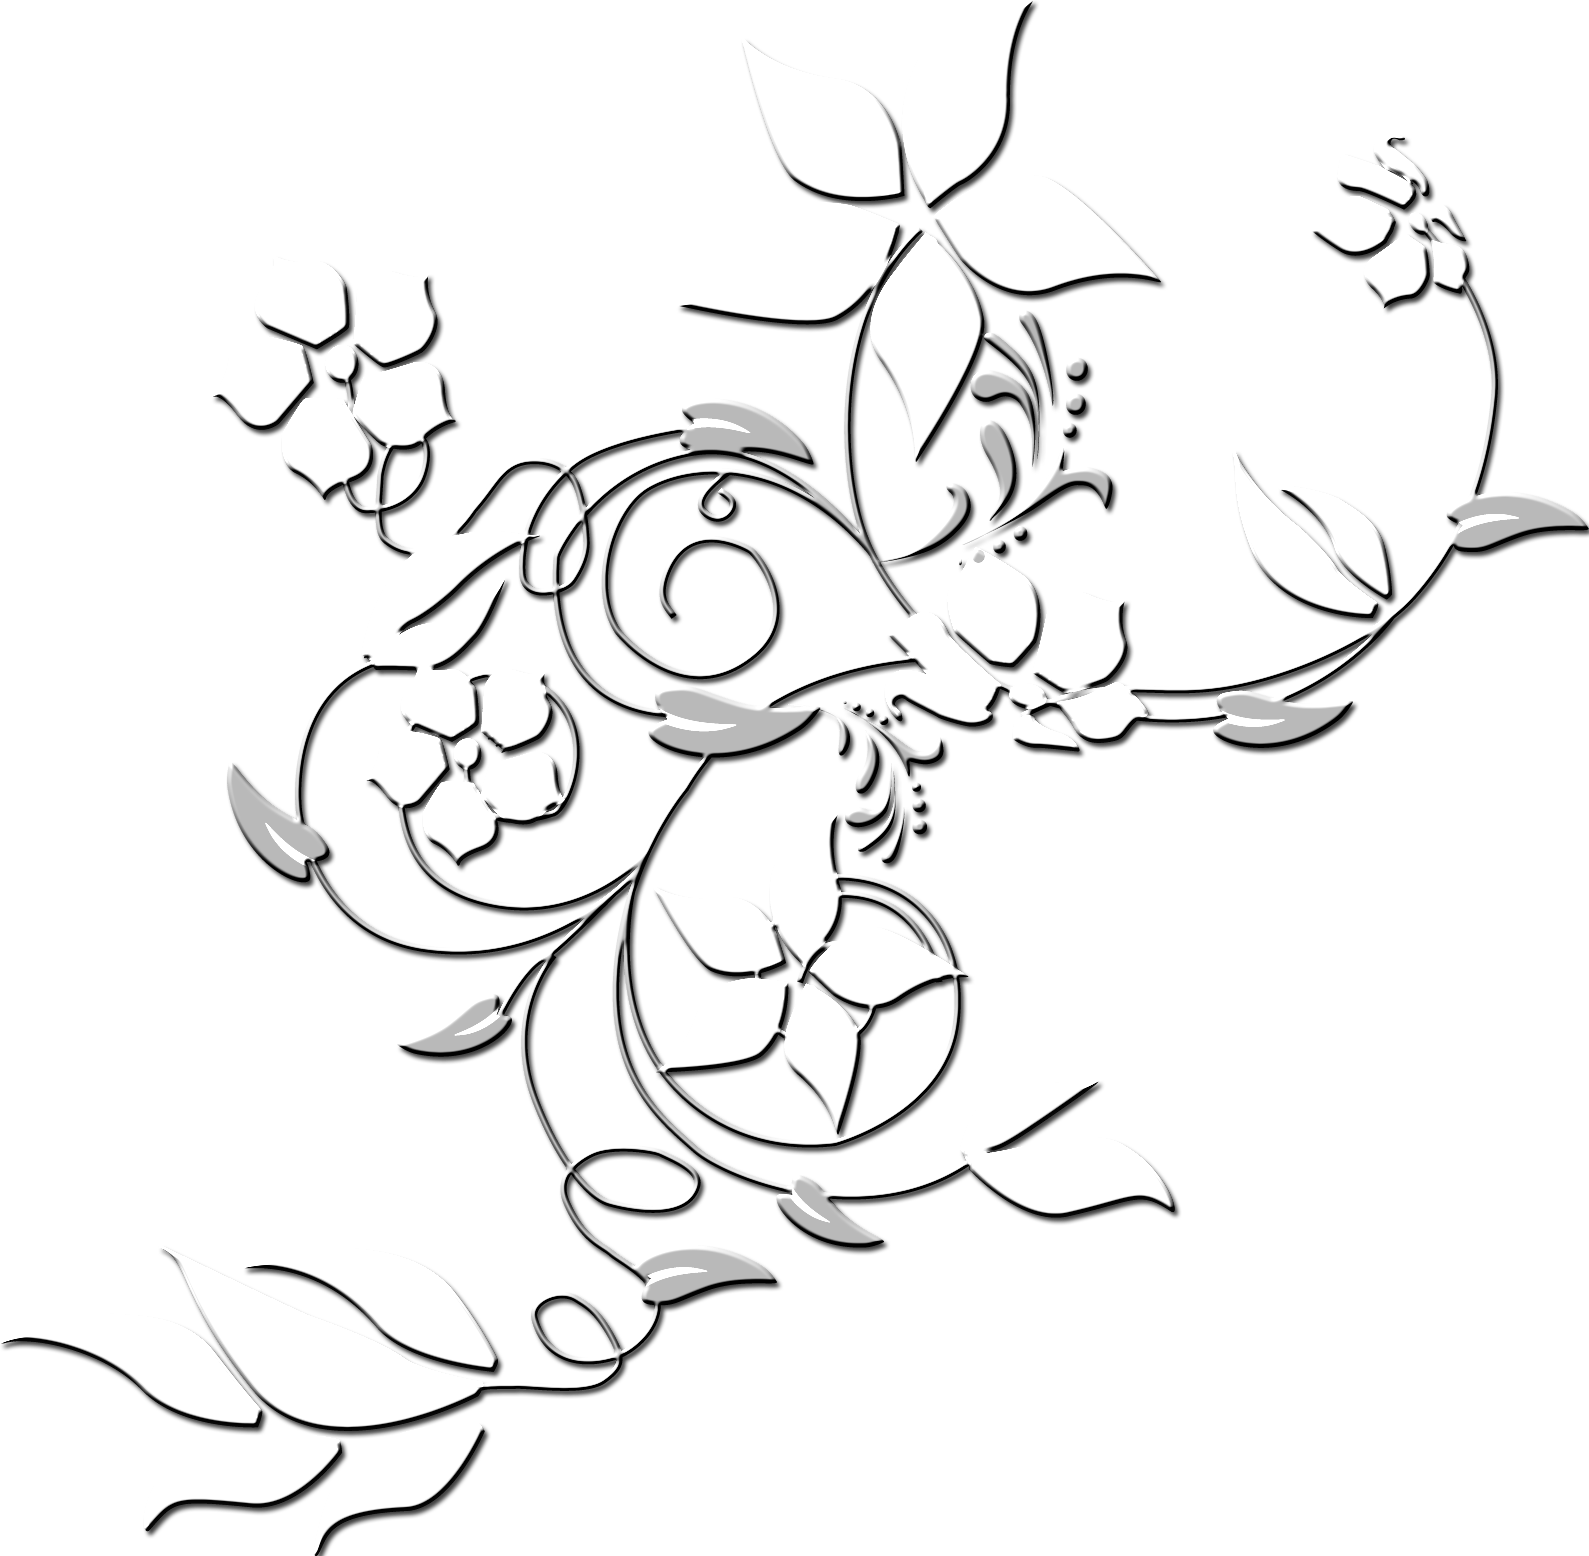 Ivy vine drawing at. Vines clipart poison oak